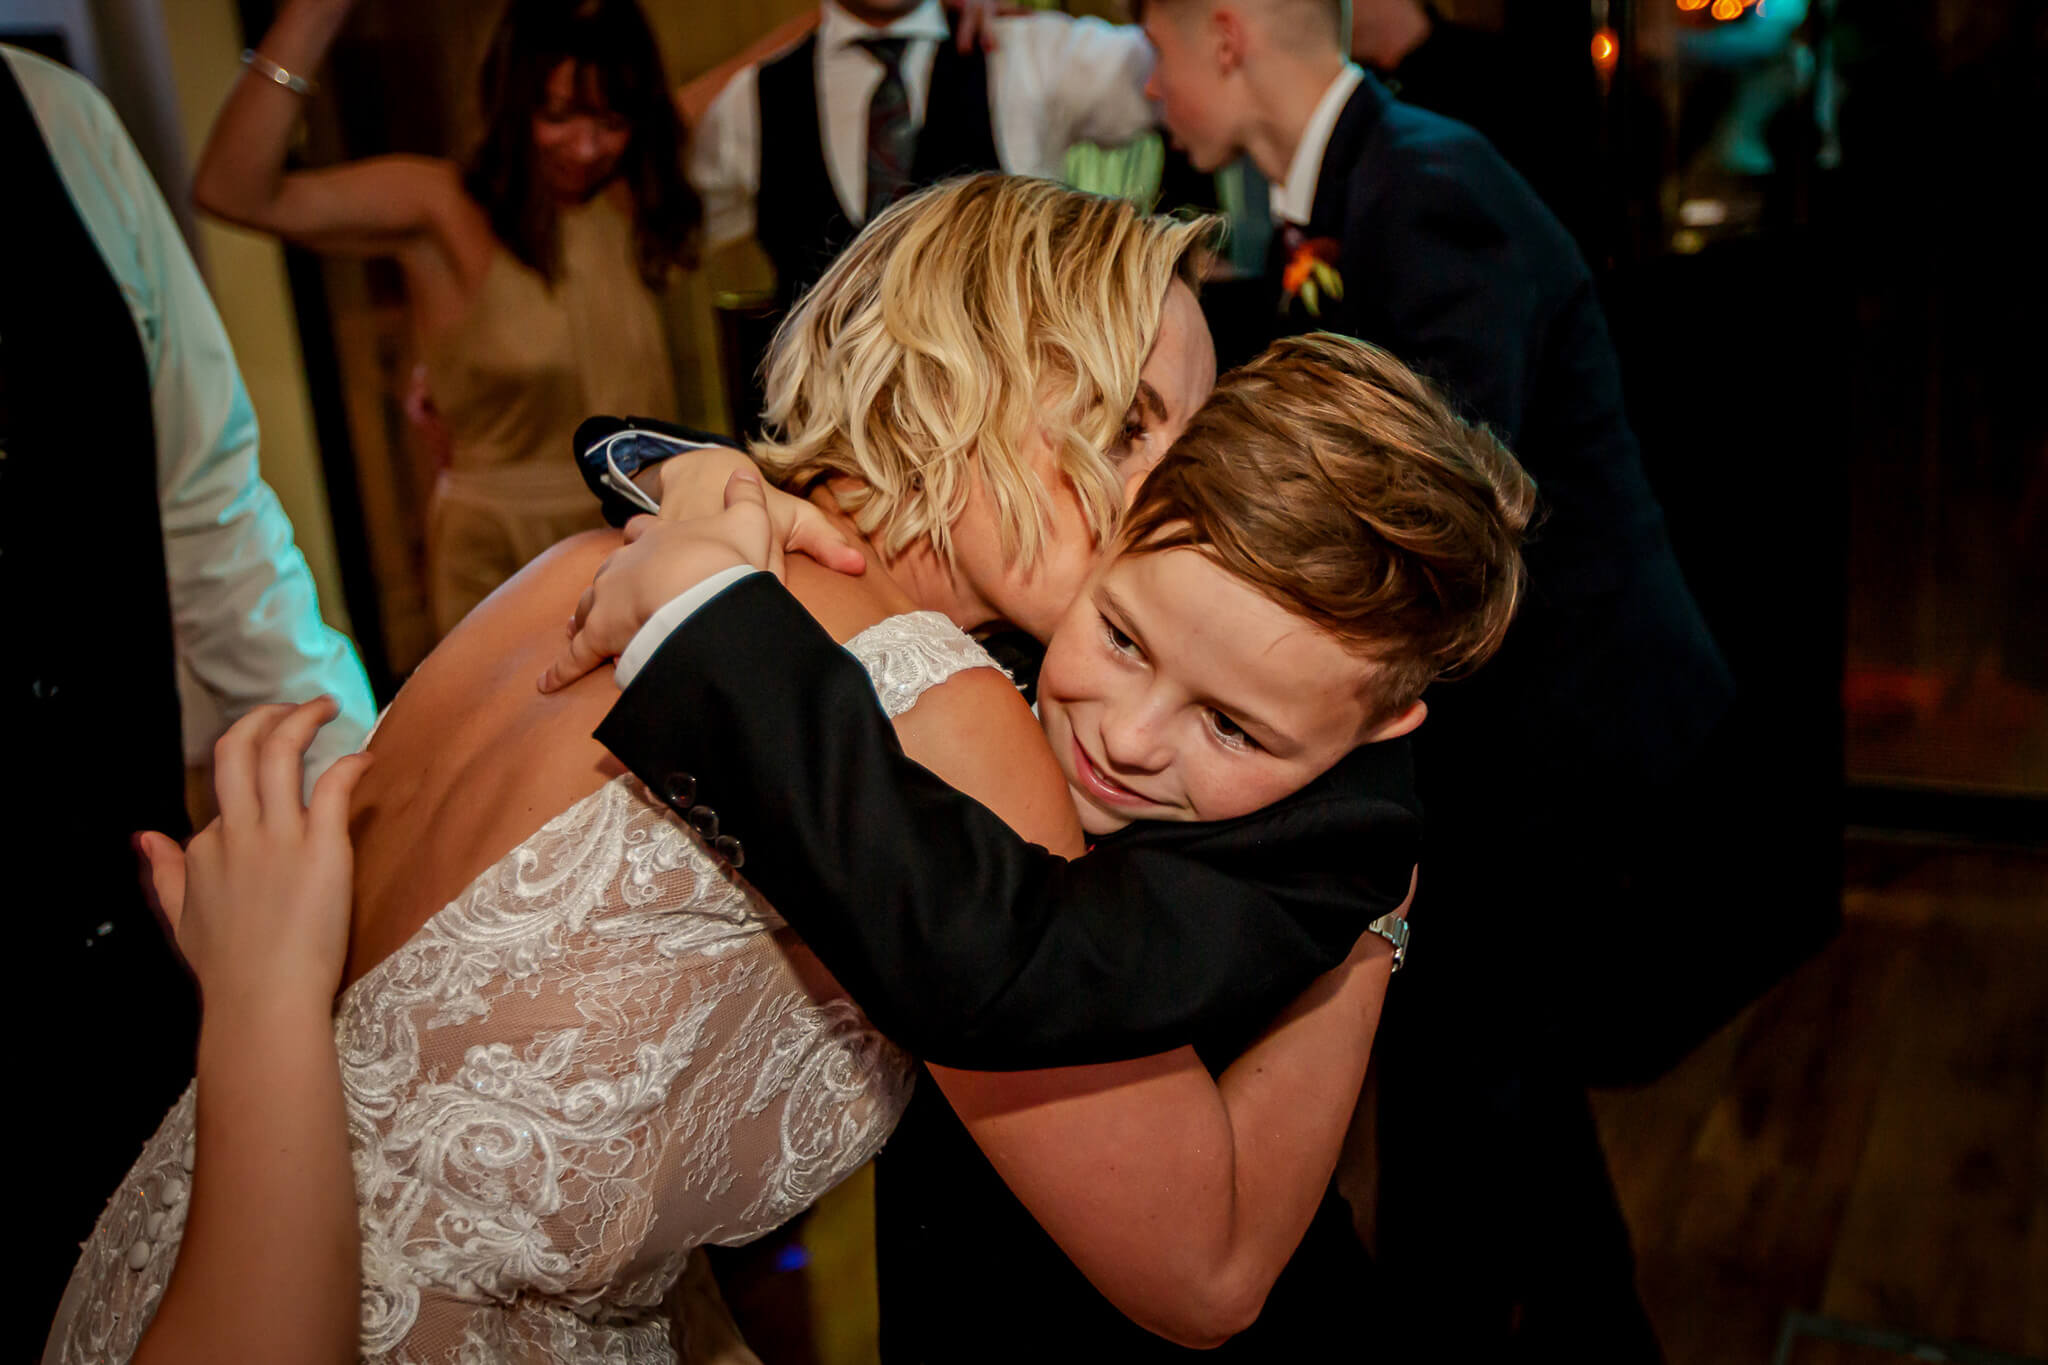 bride-son-wedding-reception-dancing-st-johns-litchfield-stanbury-photography